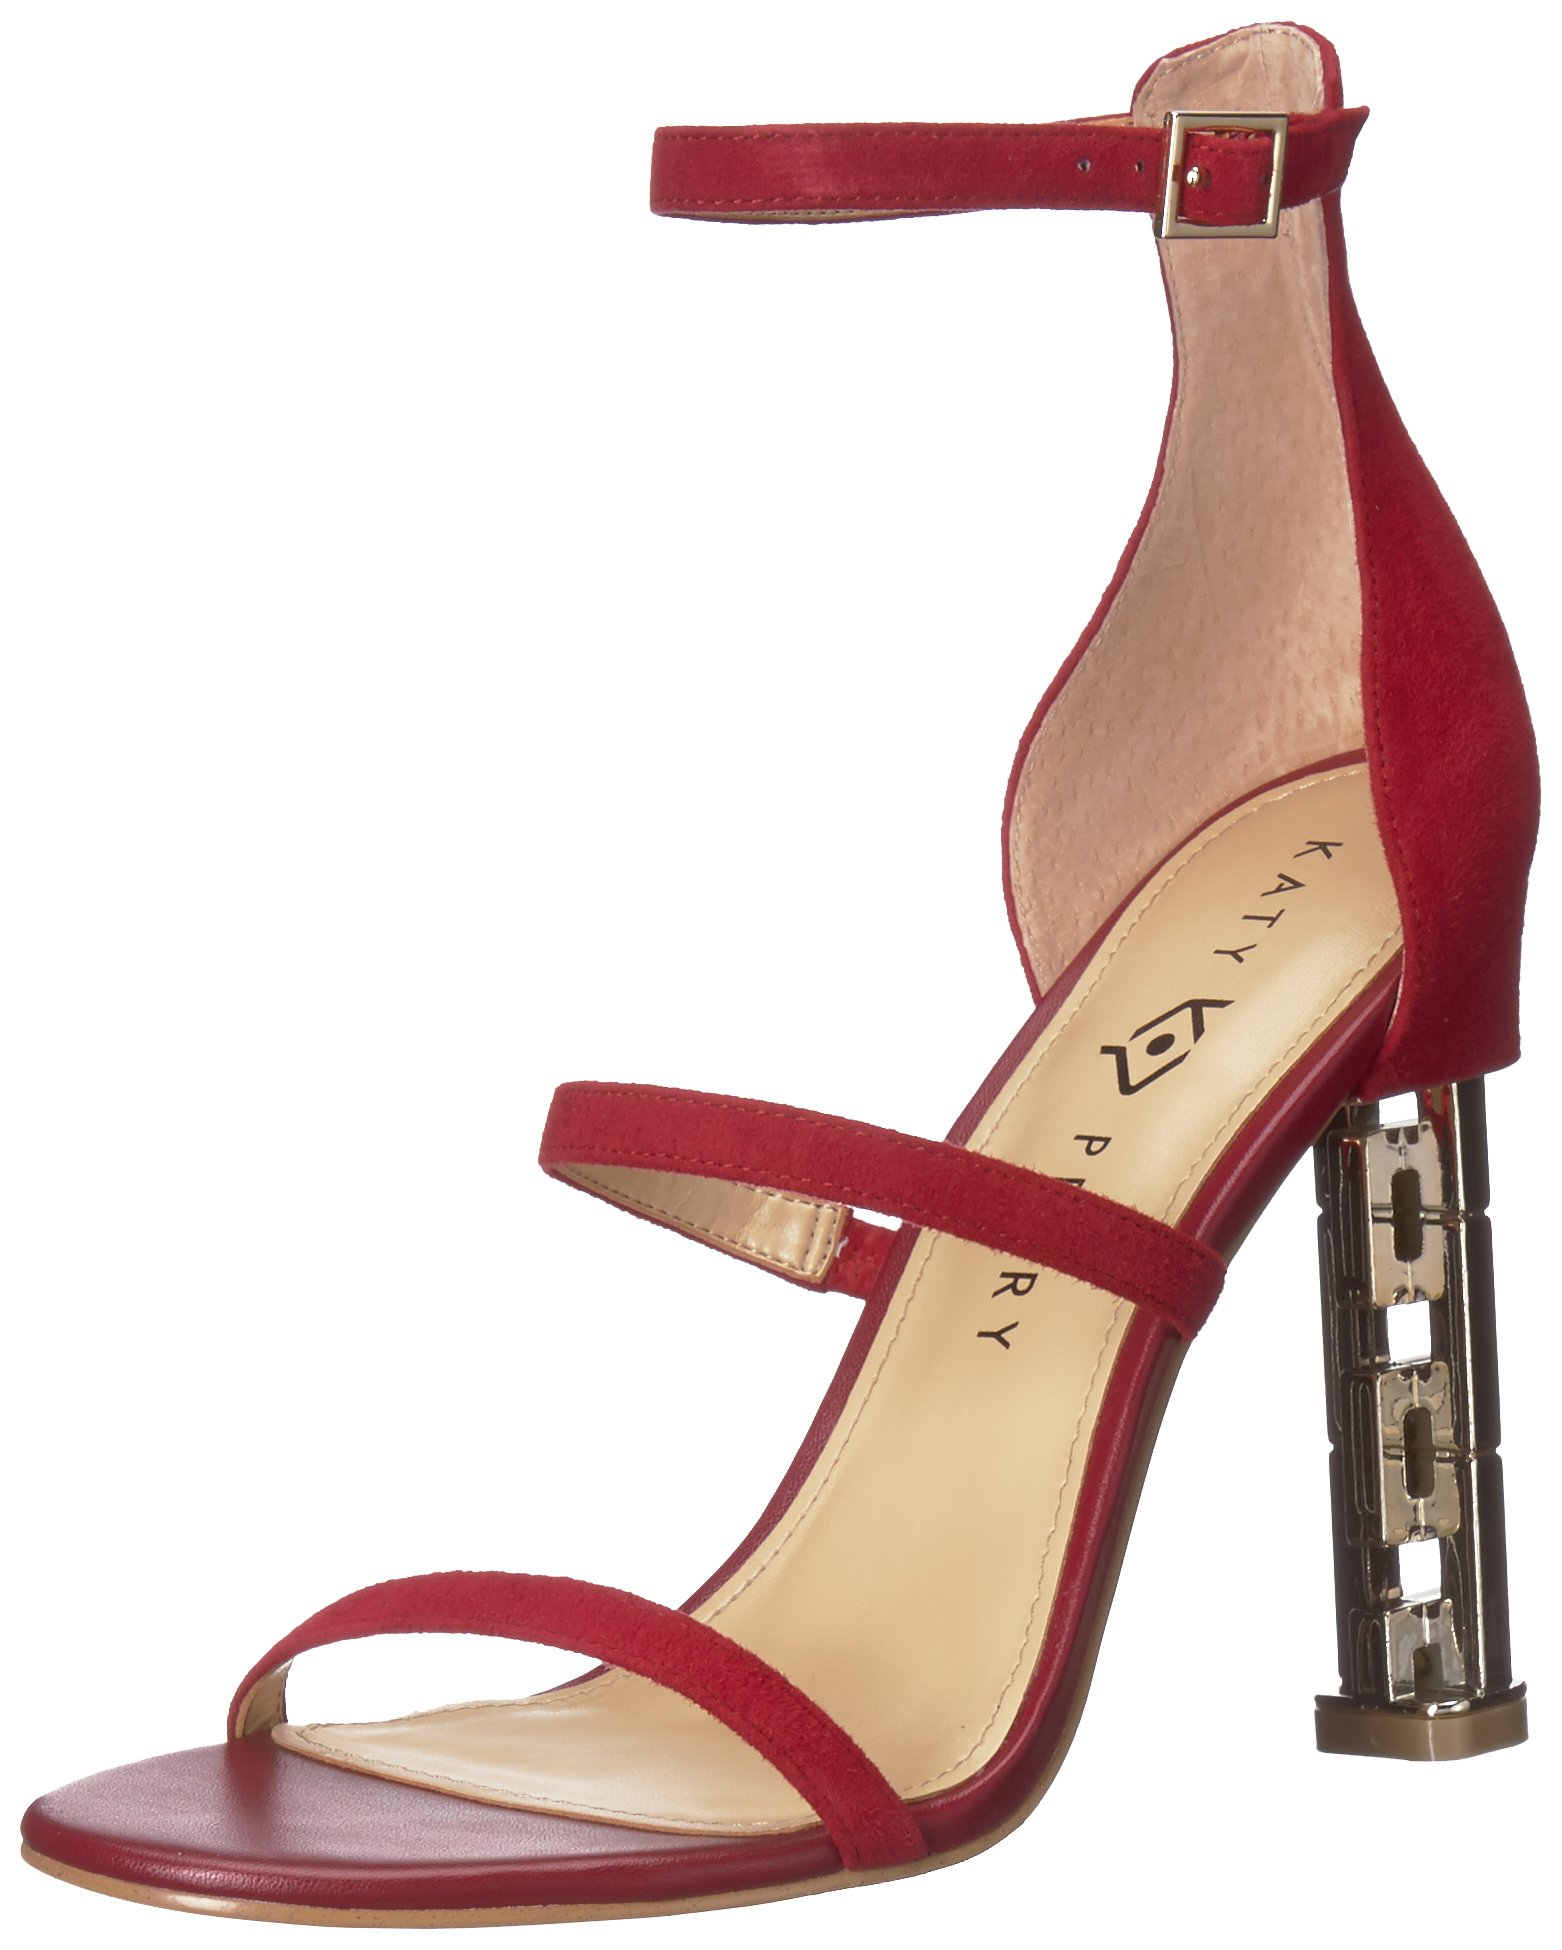 Katy Perry Women's The Vilan Heeled Sandal, Mulberry, 10 Medium US by Katy Perry (Image #1)